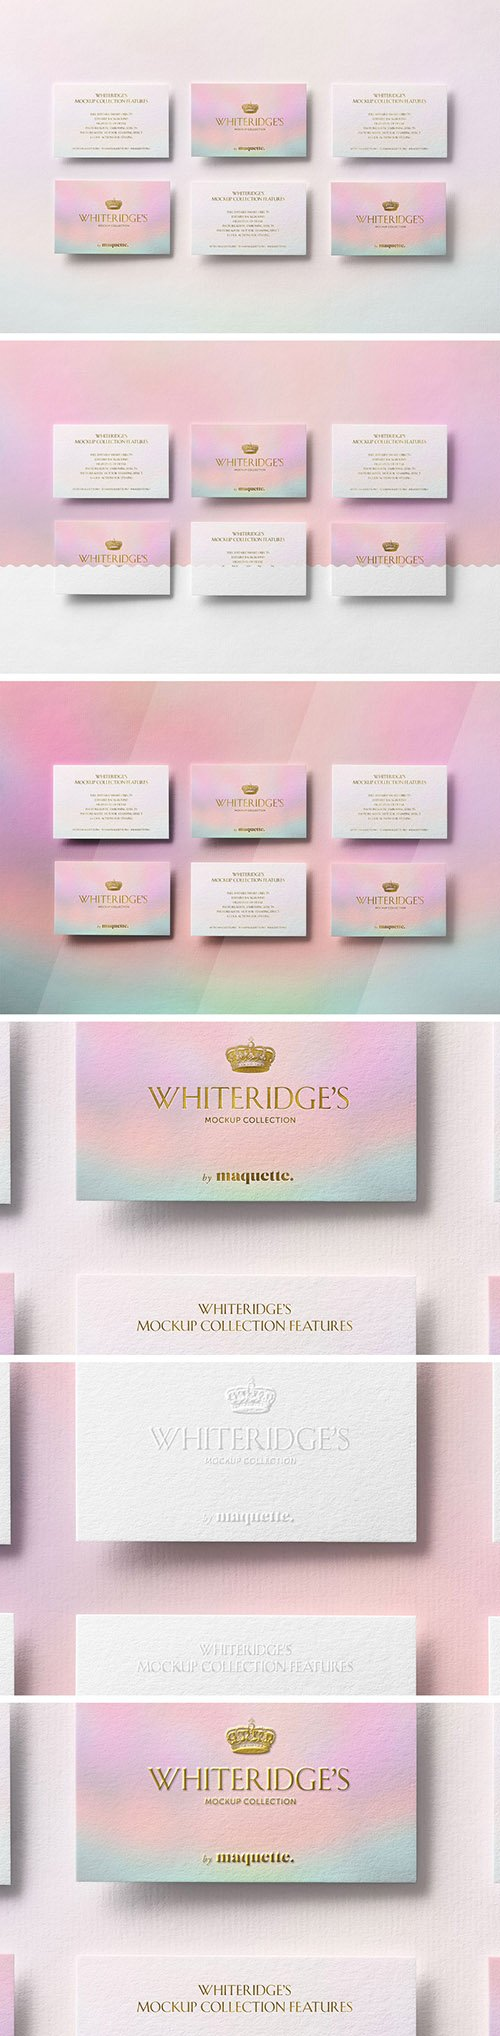 Six Luxury Business Cards with Gold Embossing Mockup 1 130418380 PSDT